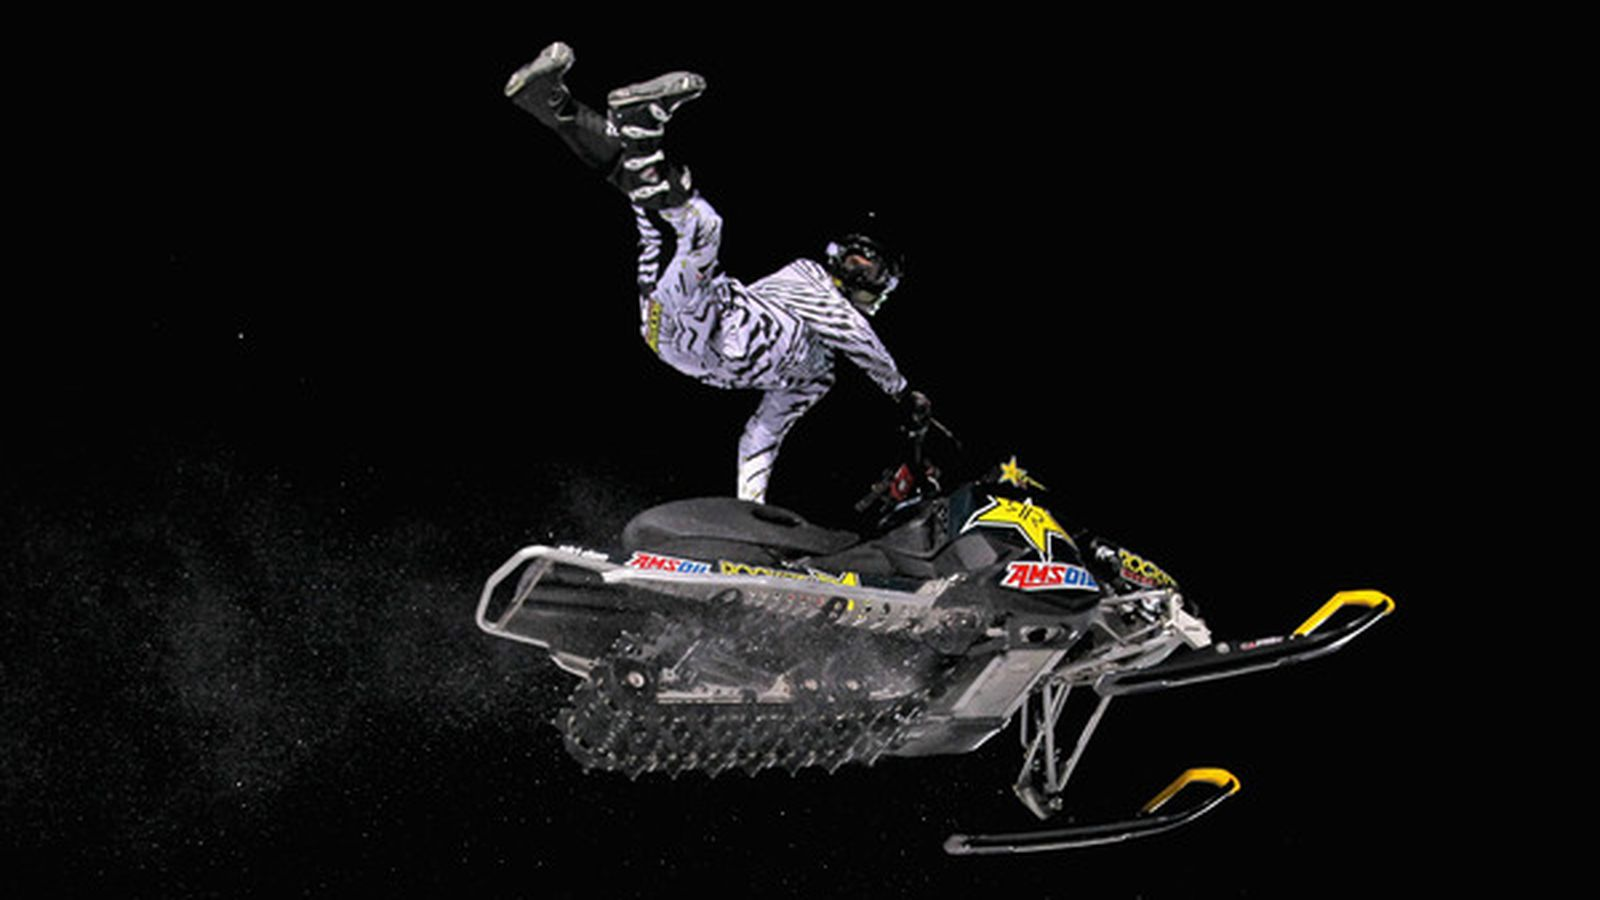 The X Games | HowStuffWorks